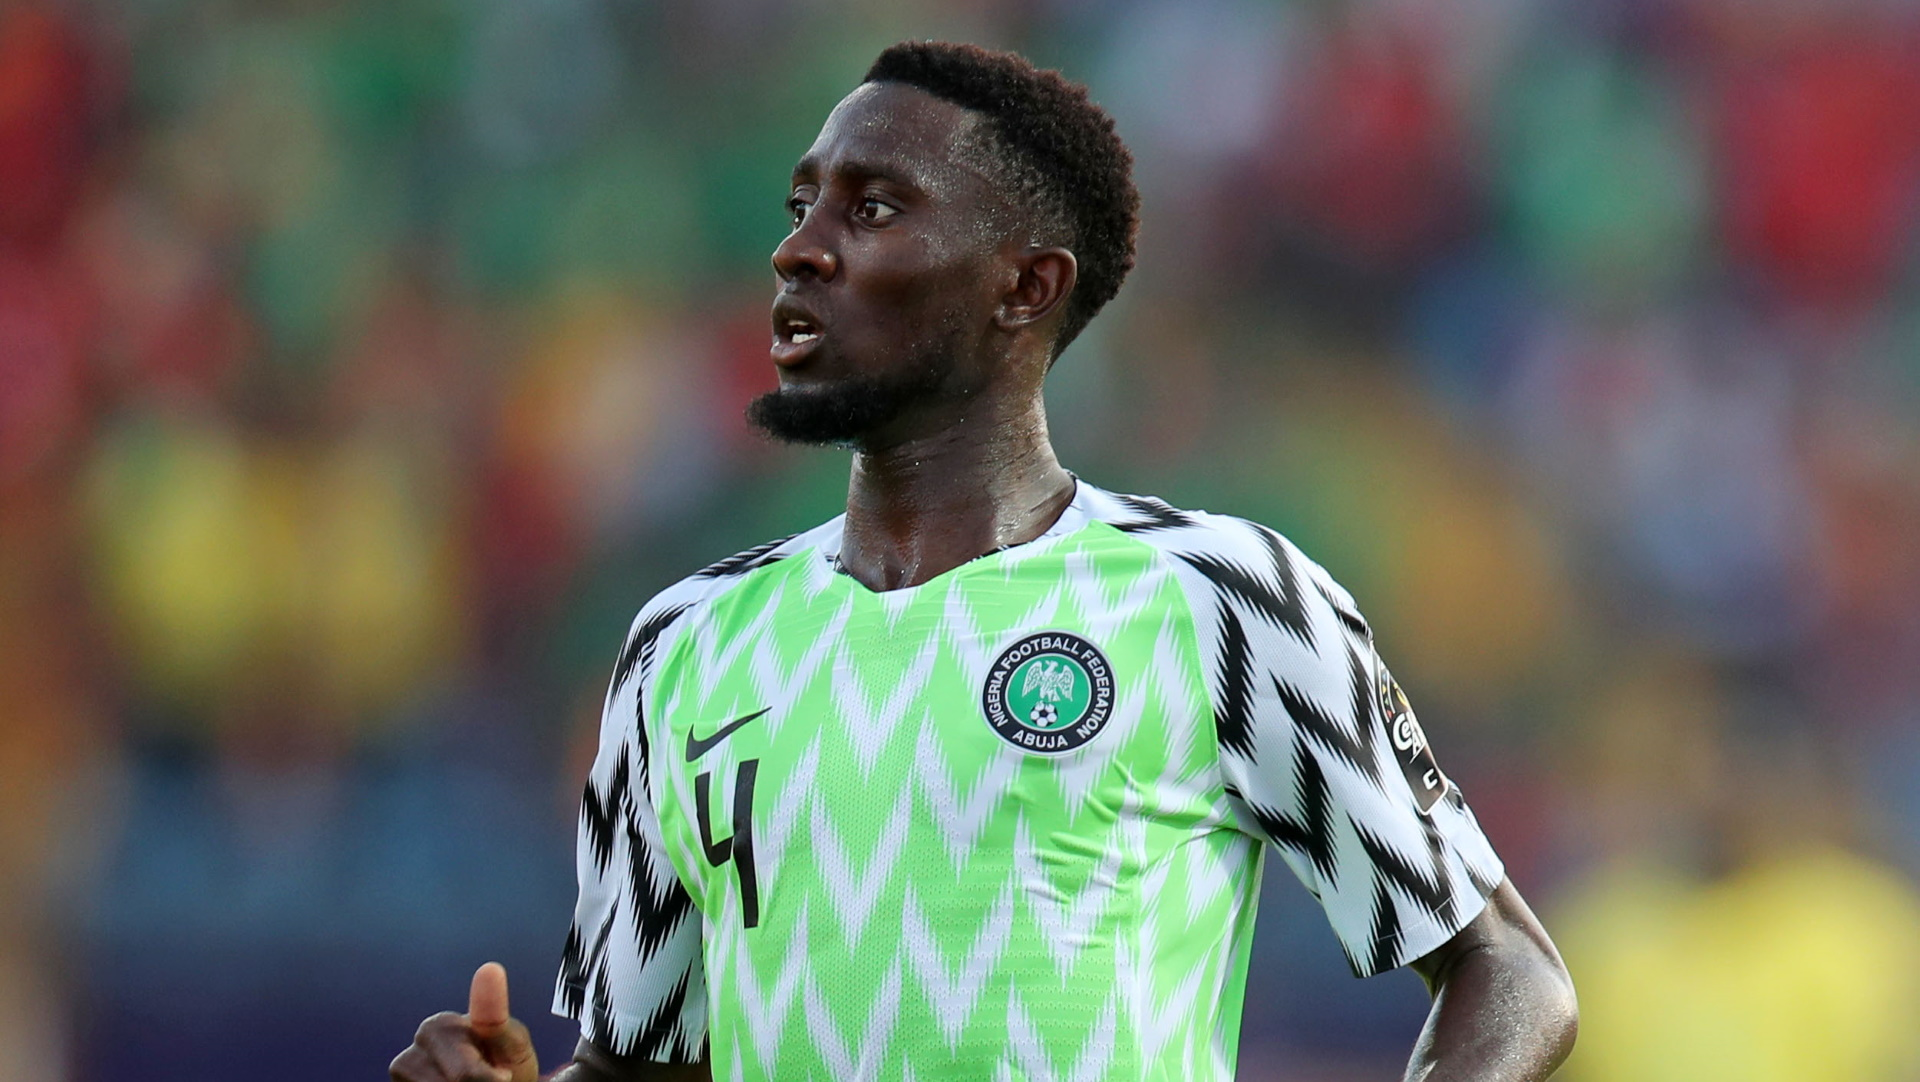 Nigeria 0-1 Cameroon: What did we learn?